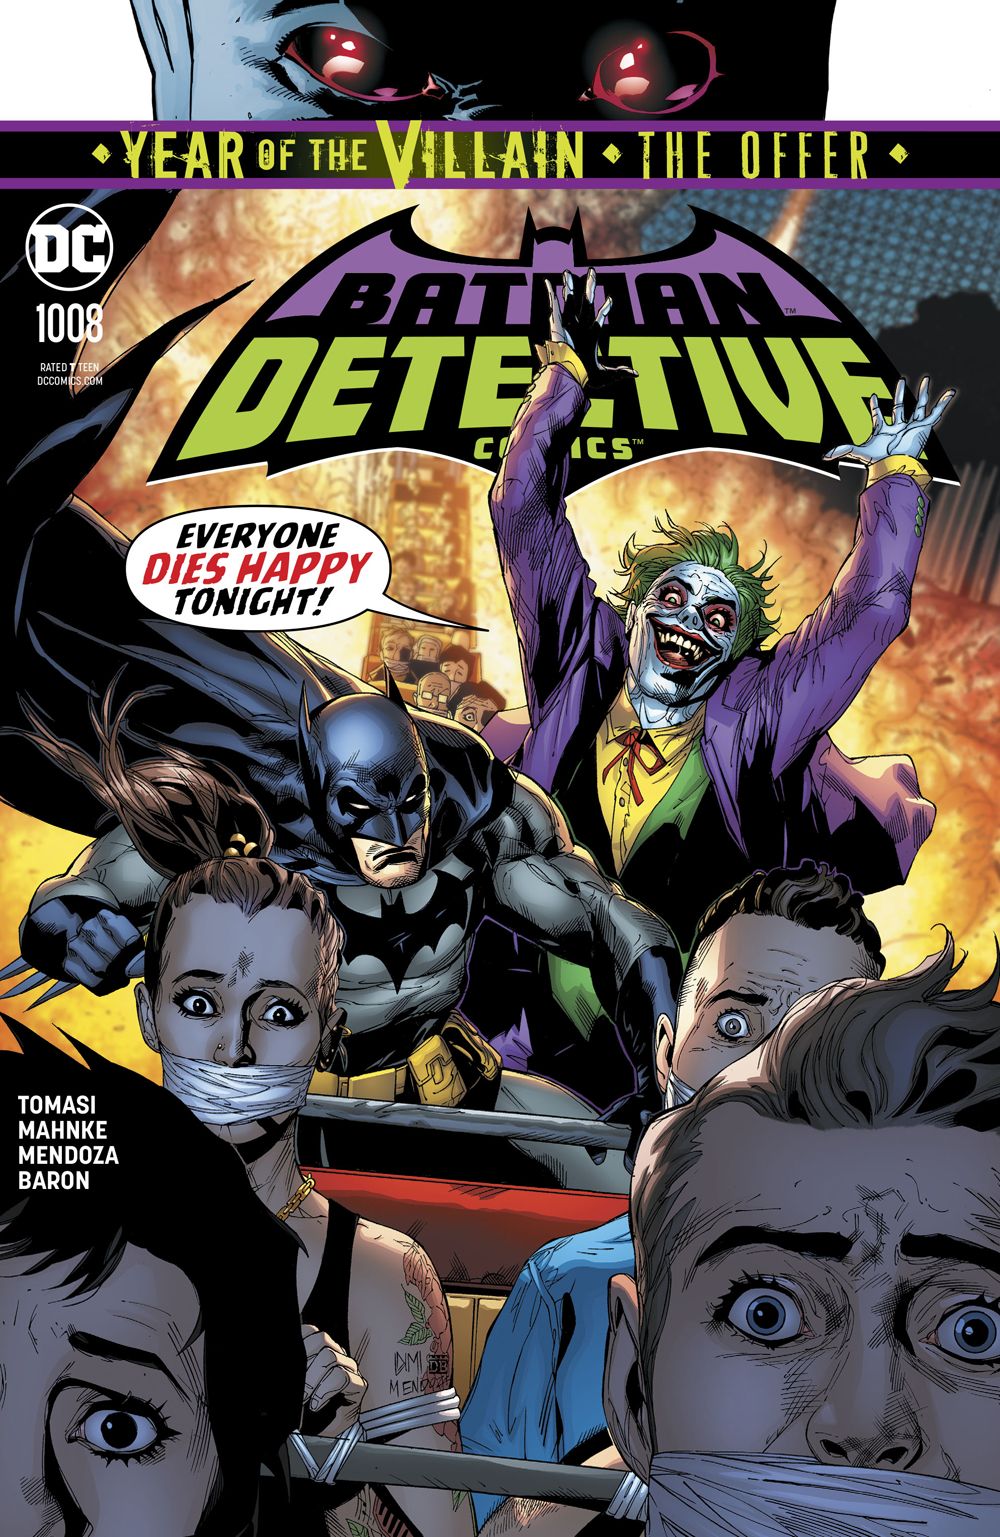 Detective Comics #1008  is out now!